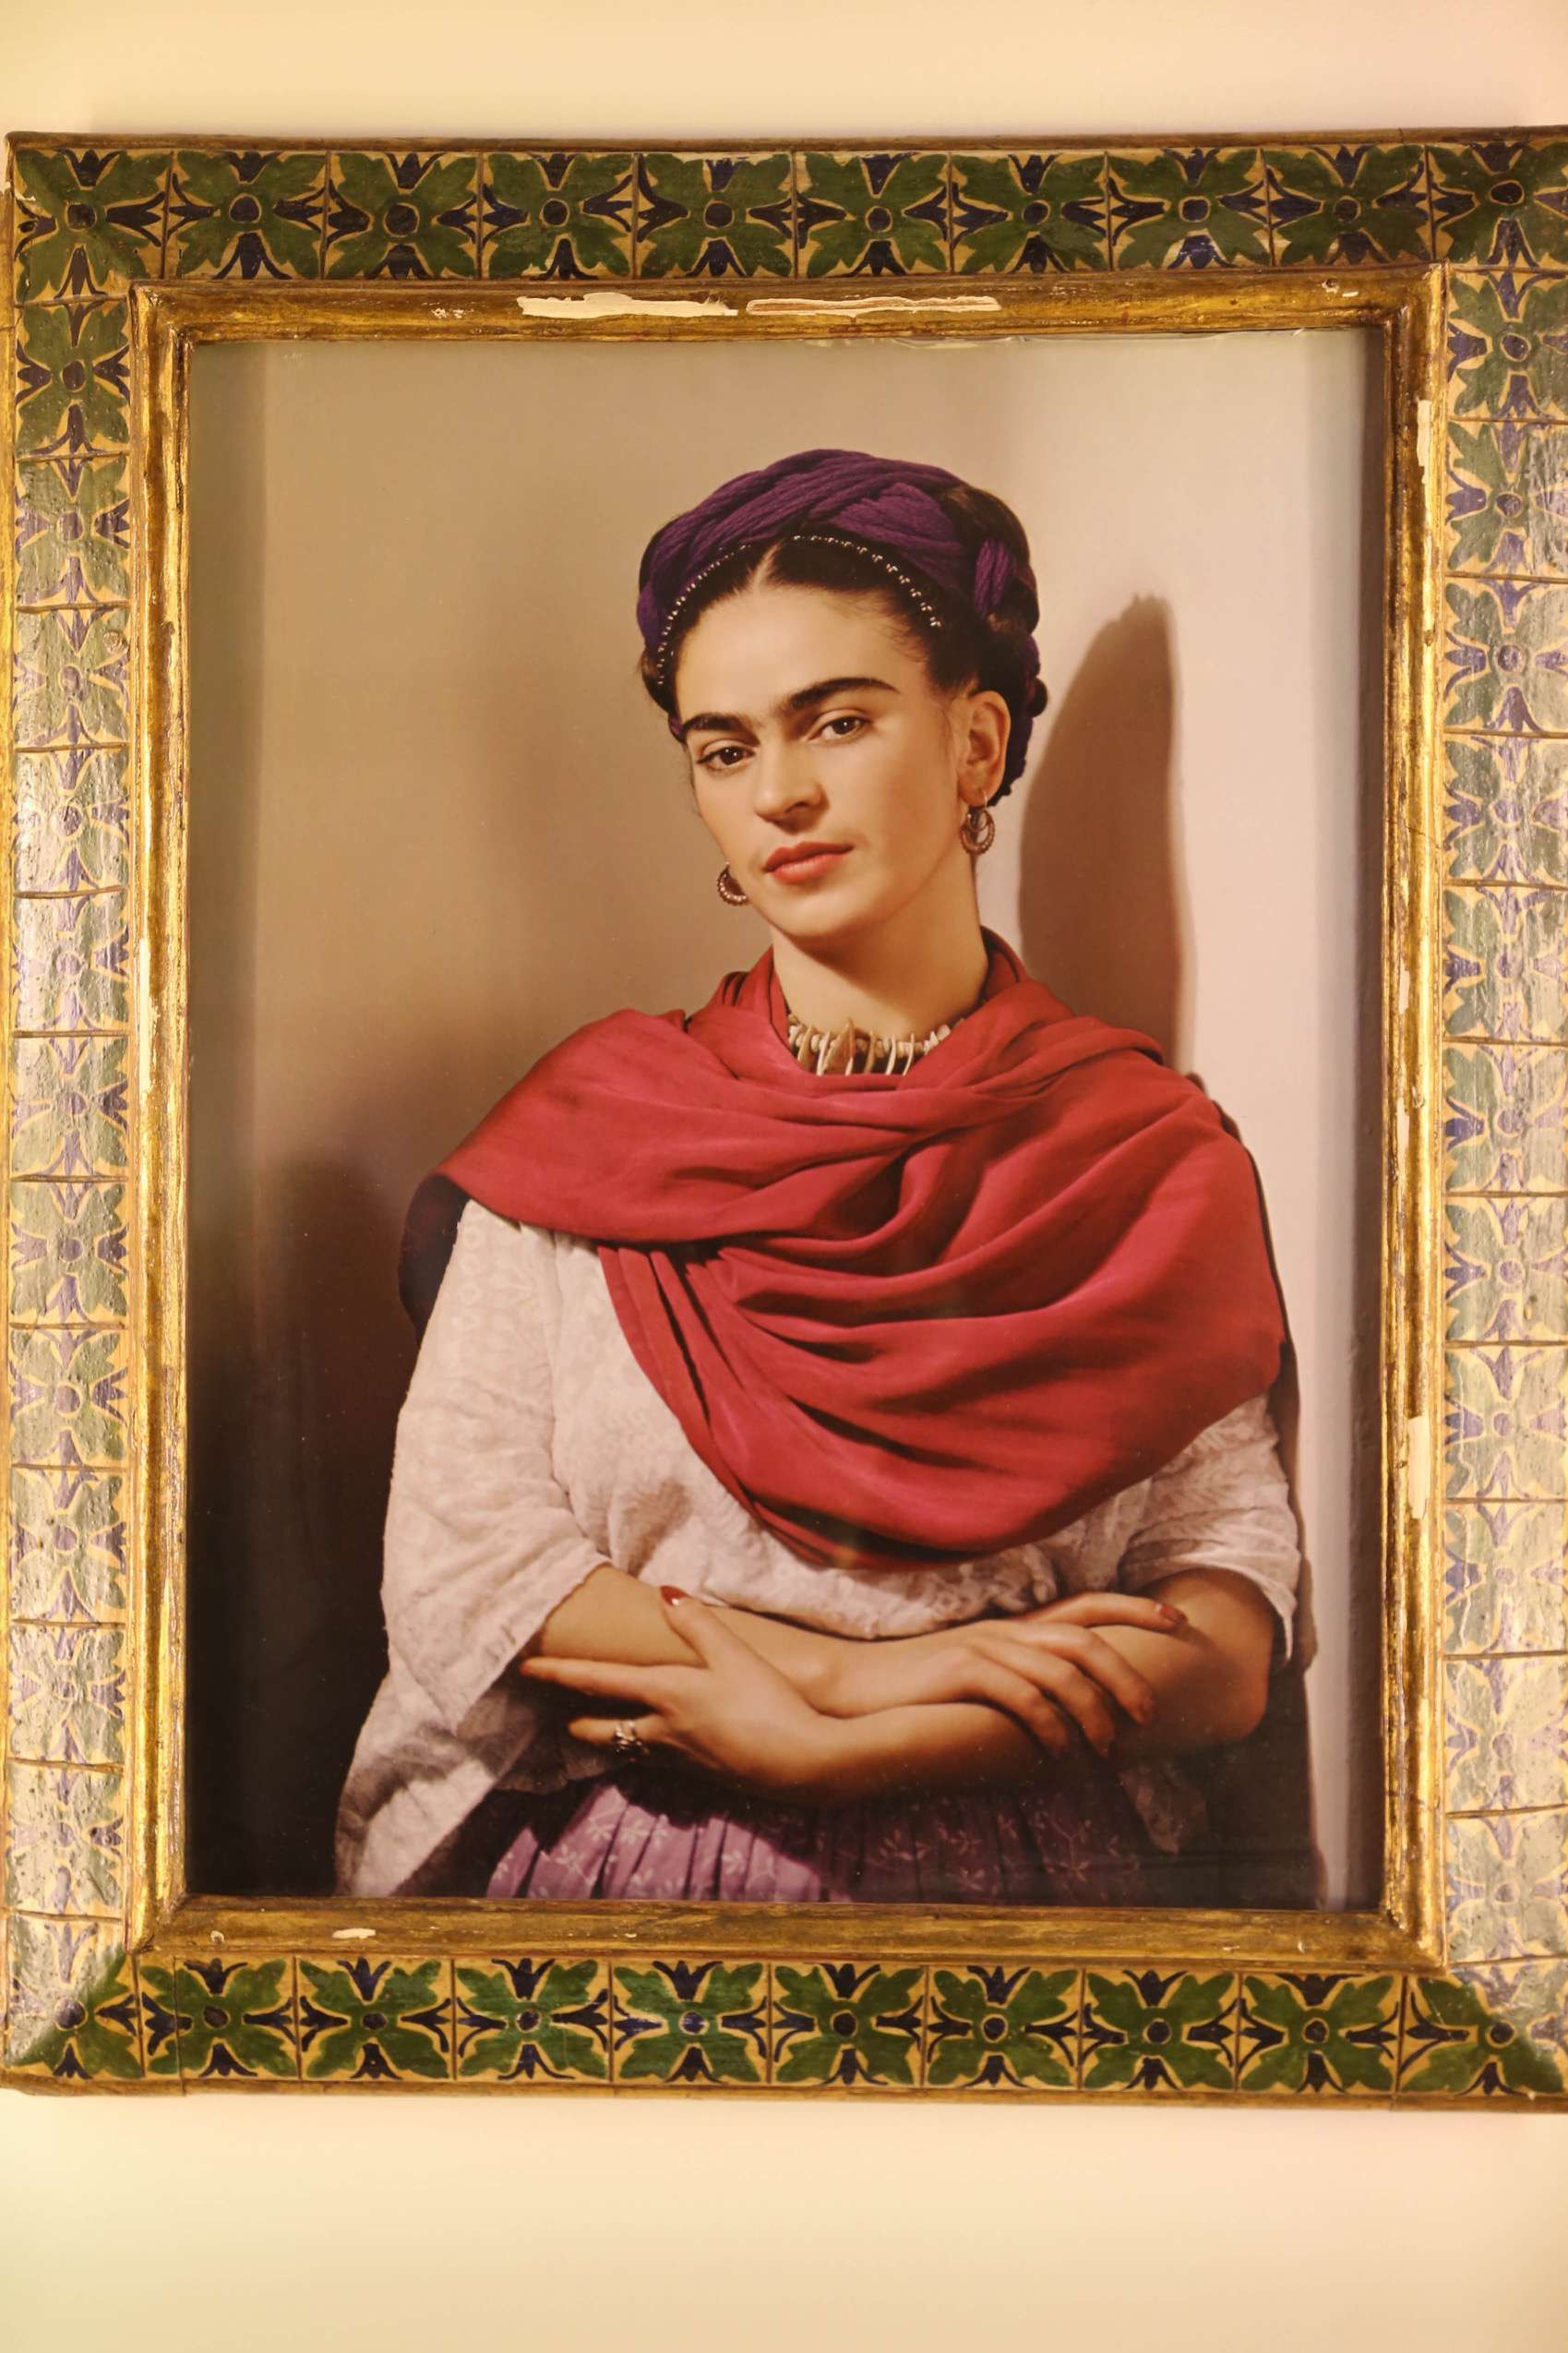 While Guillermo Kahlo photographed Frida when she was a young girl, this portrait was shot by someone else when she was an adult. But Frida knew how to strike a telling pose for a photo.